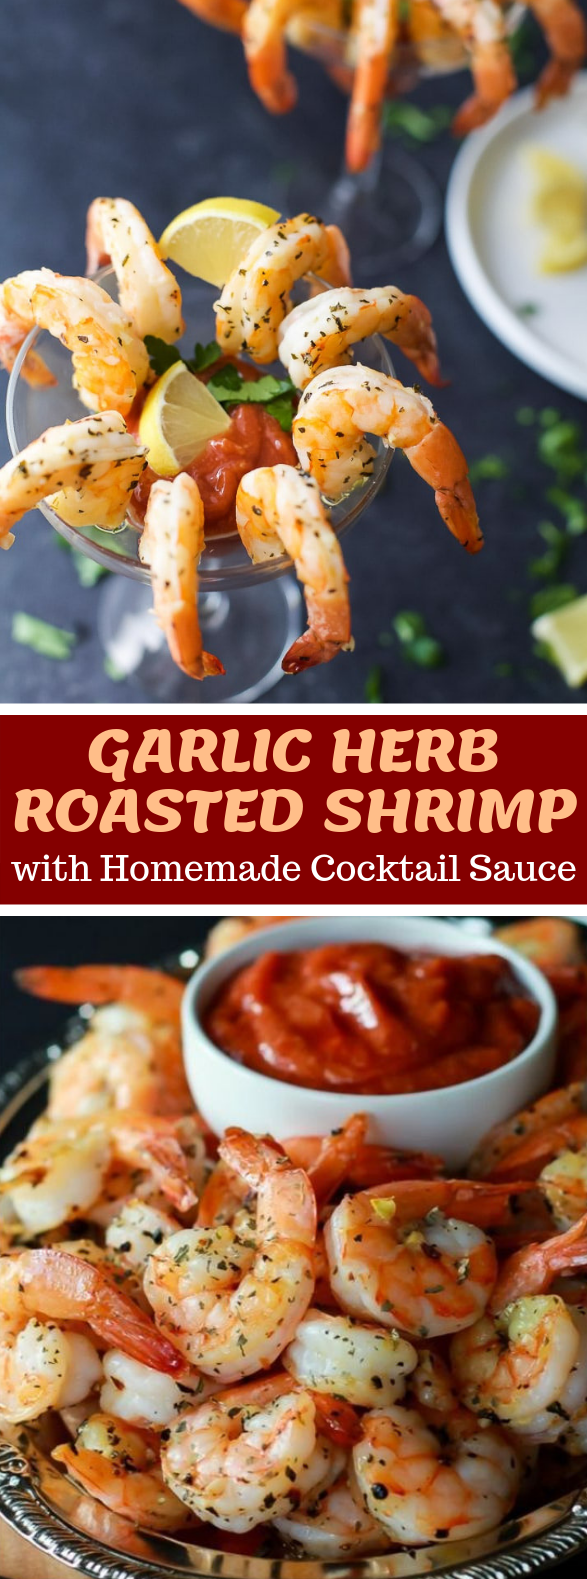 Garlic Herb Roasted Shrimp with Homemade Cocktail Sauce #appetizers #holidayparty